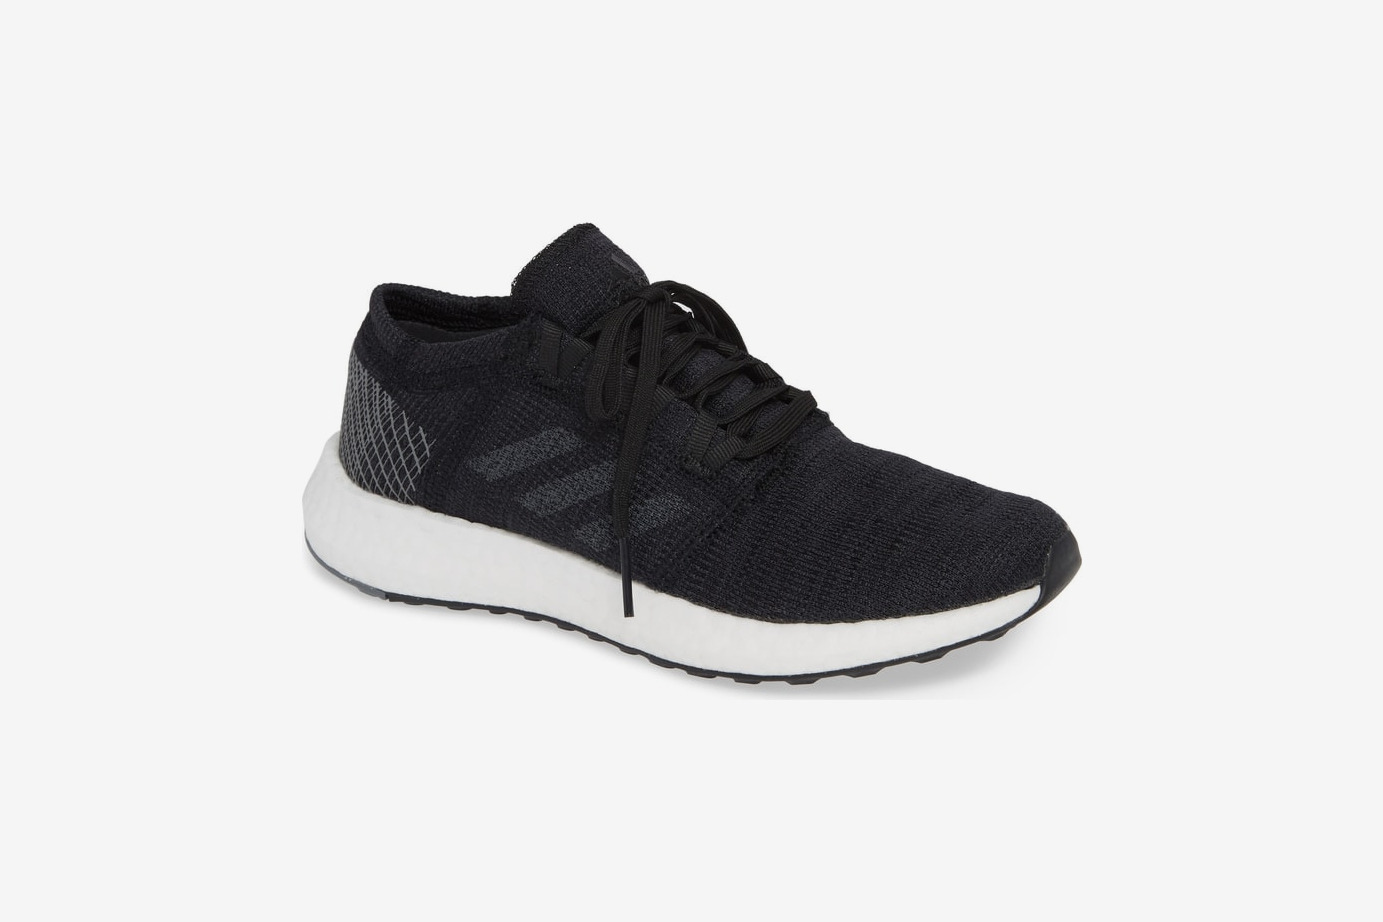 Adidas PureBoost X Element Knit Running Shoe